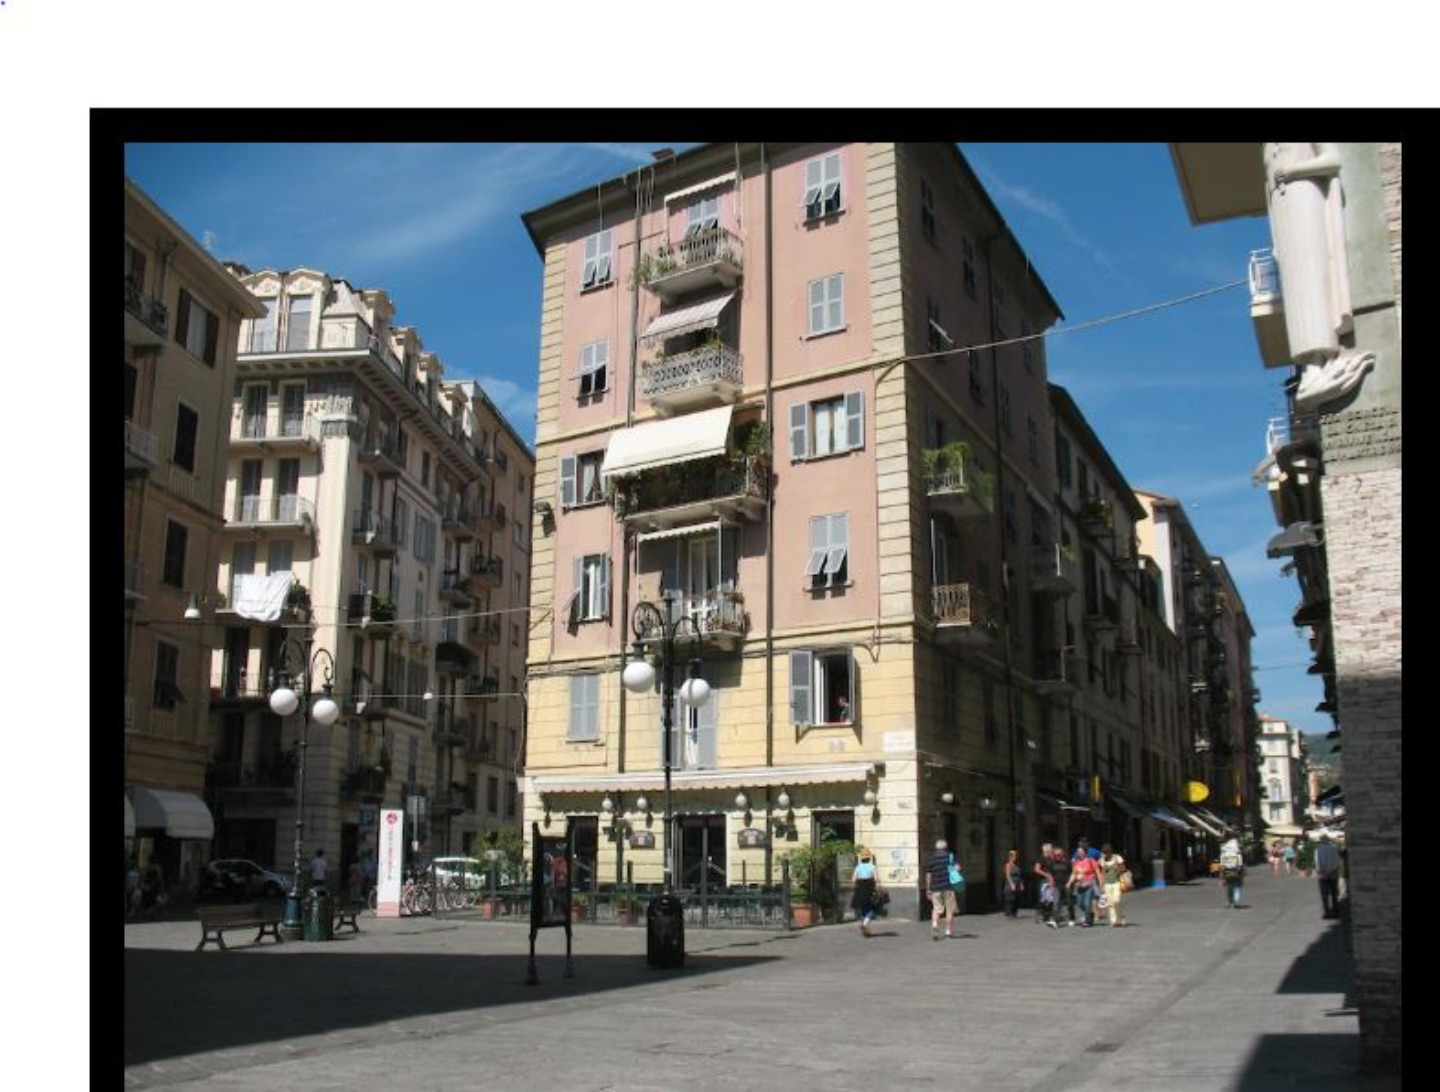 A tall building in a city at I REMI DEL PRIONE.